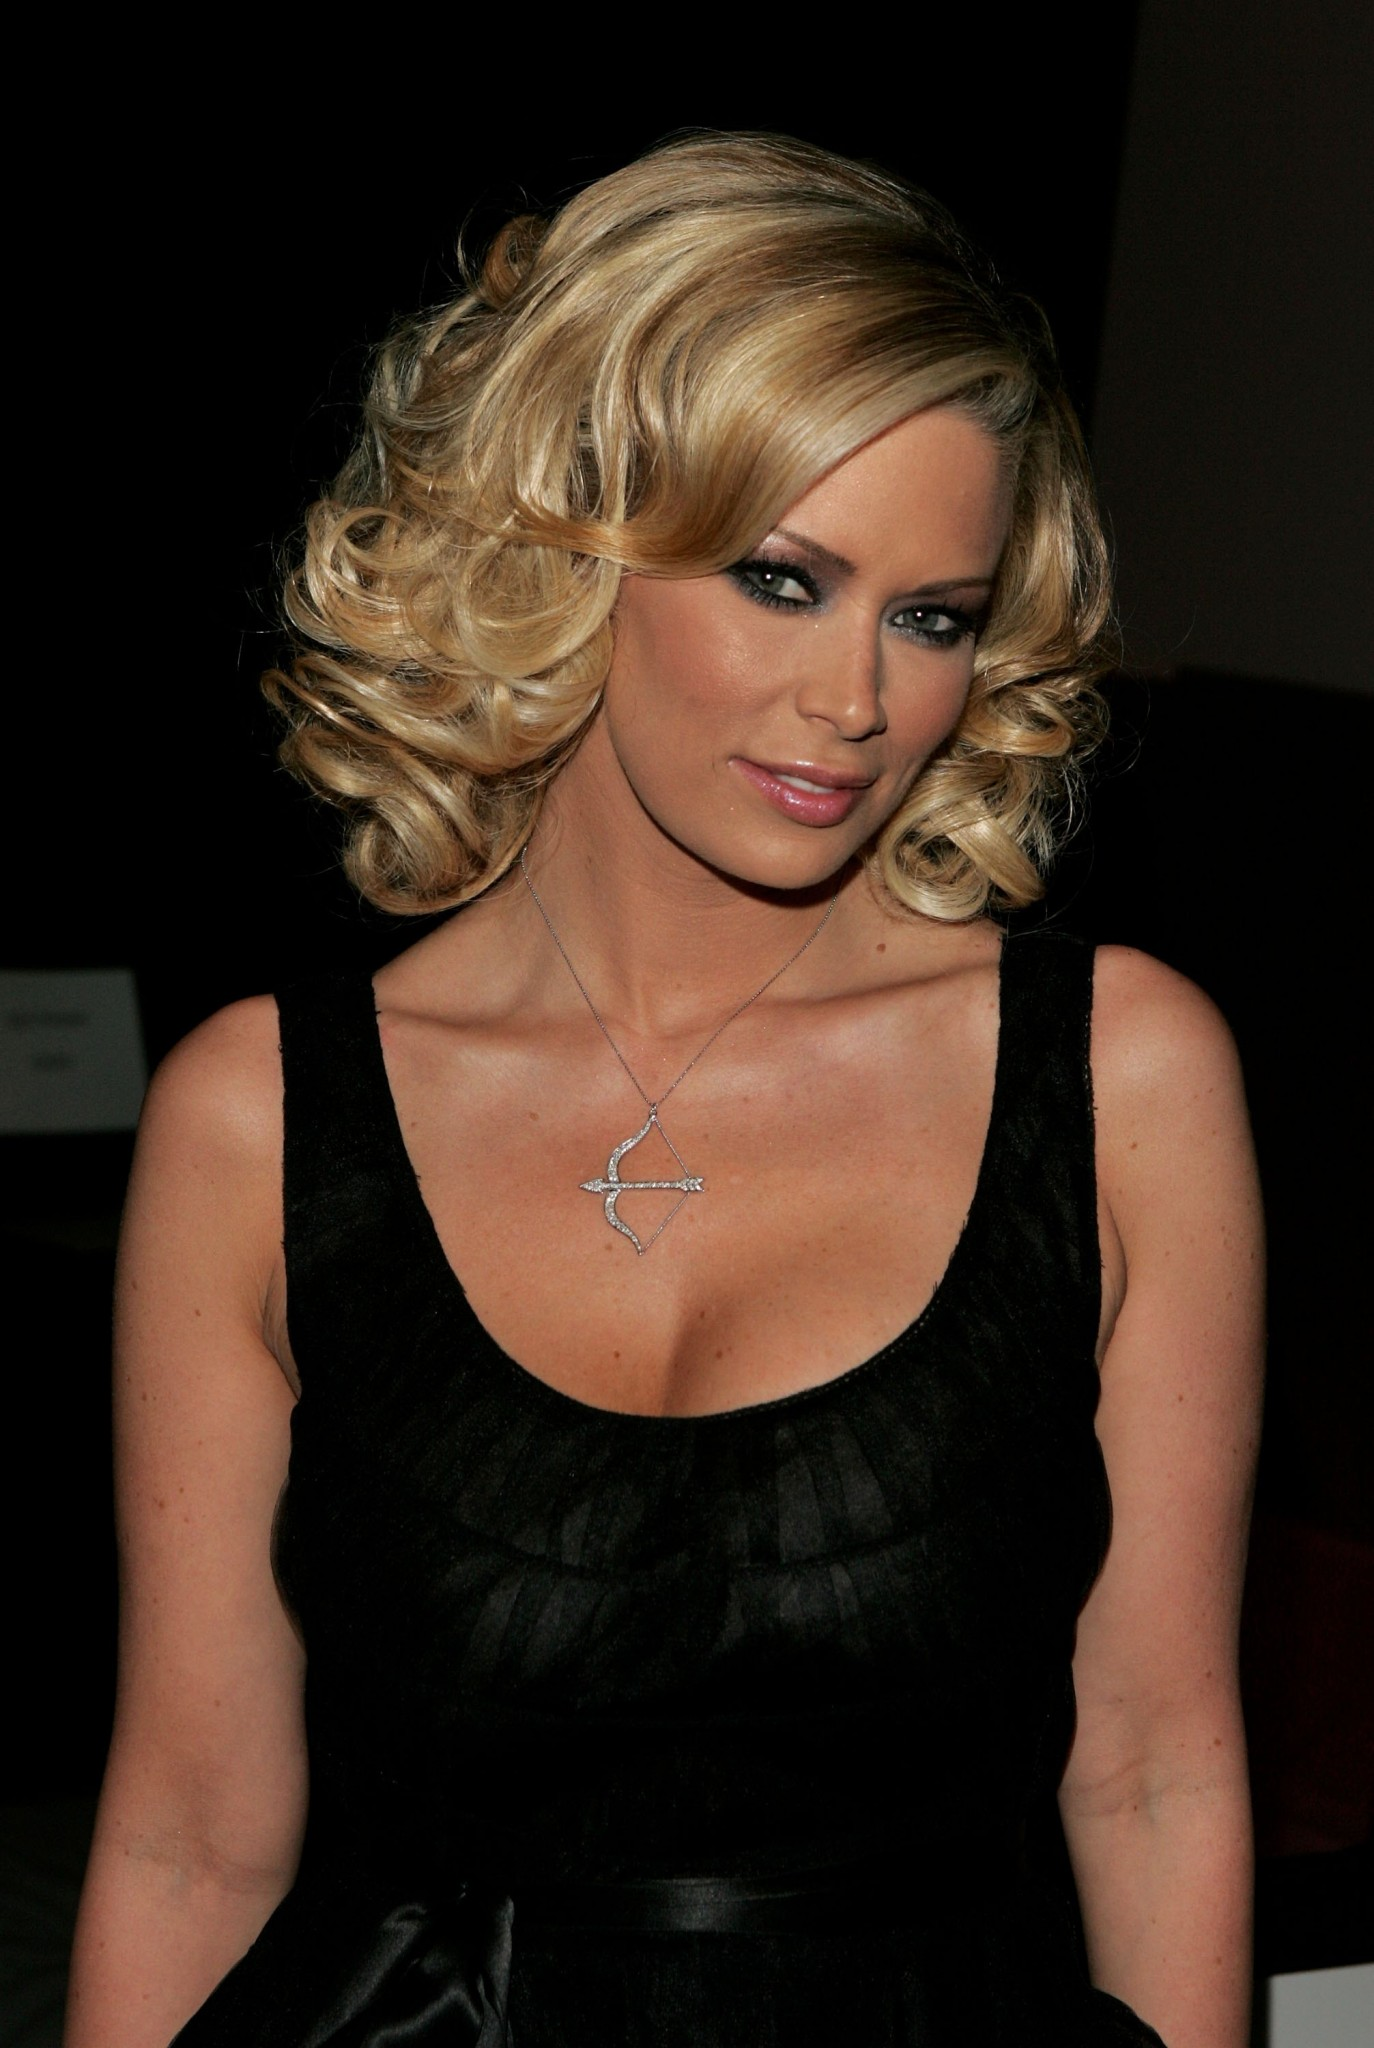 The world's 10 most notorious porn stars - Jenna Jameson